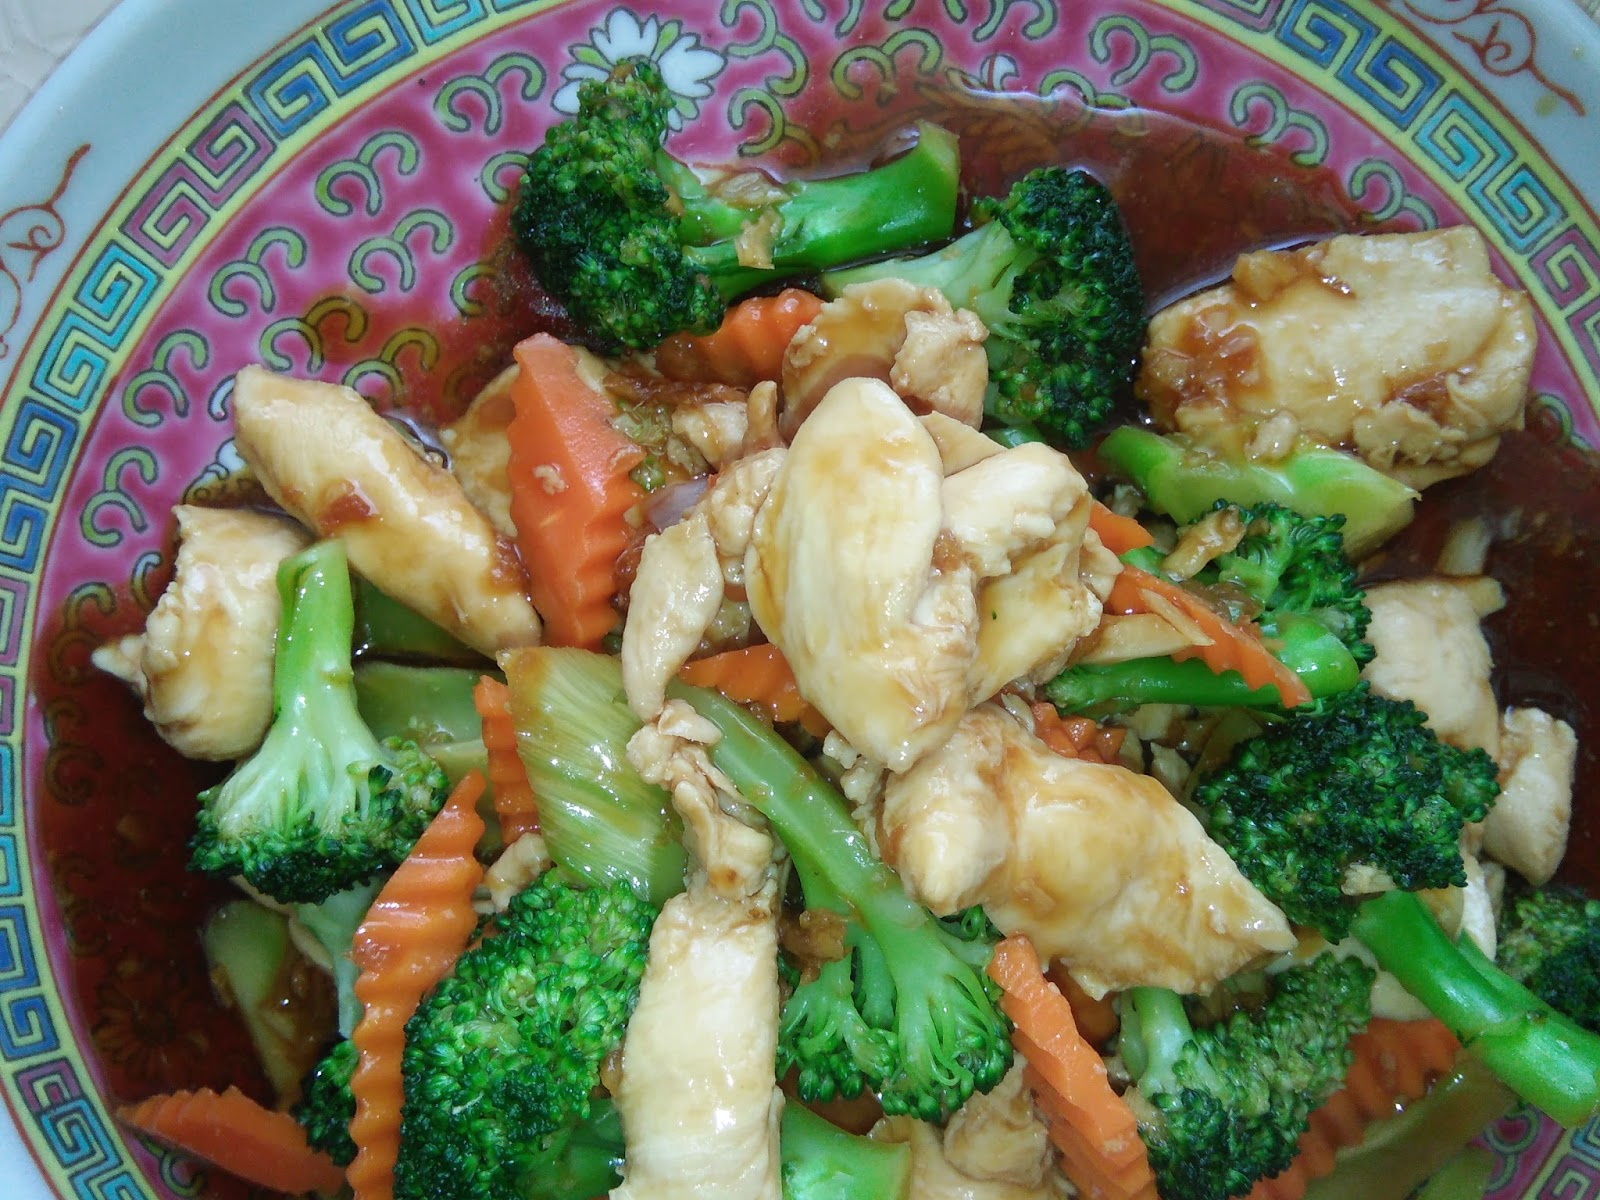 Stir Fry Broccoli With Chicken